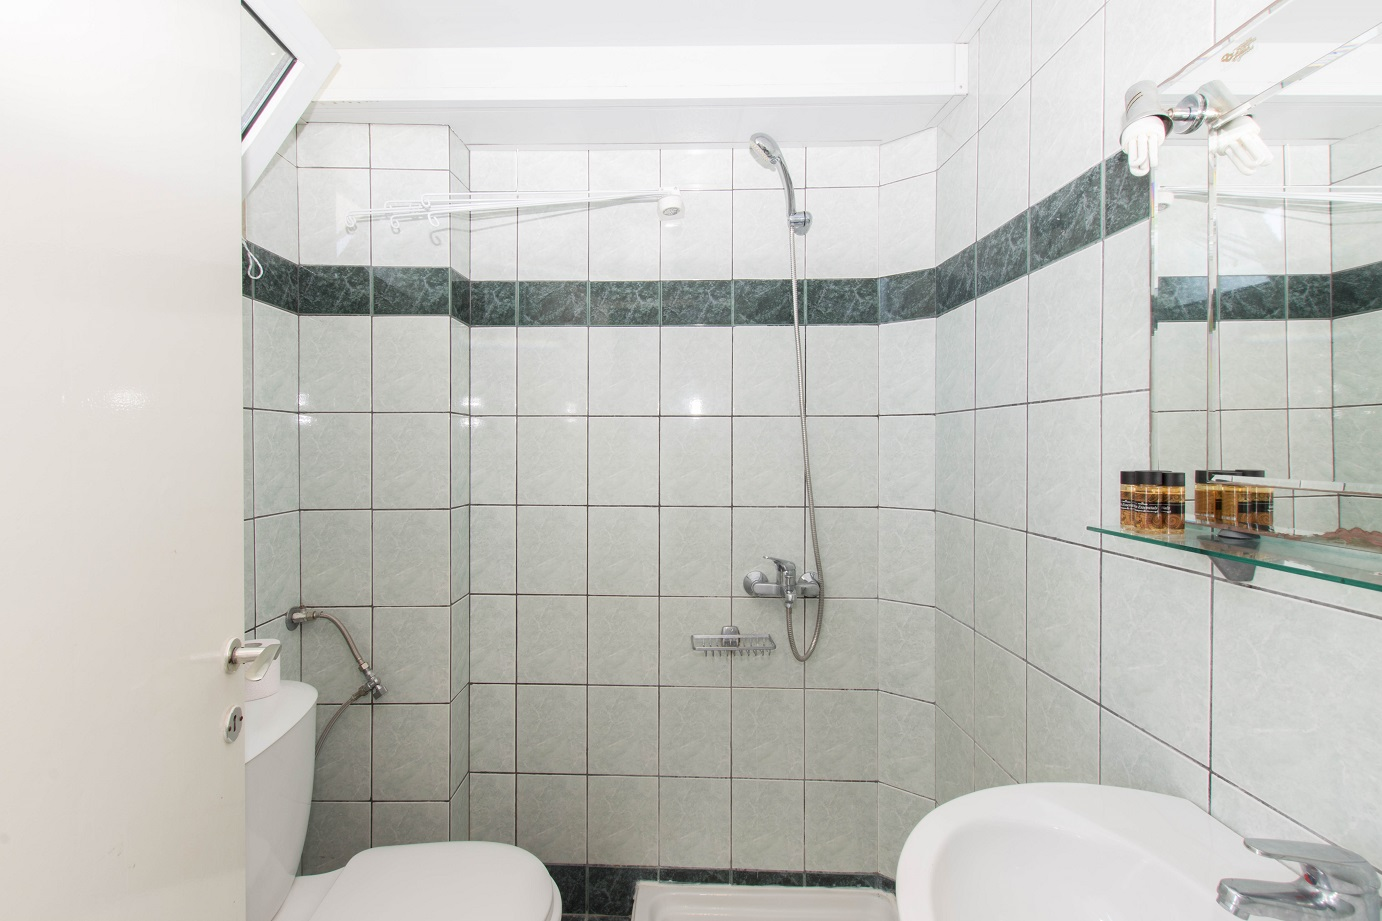 Apartment-Hotel_Karayiannis-Keramoti-Bathroom